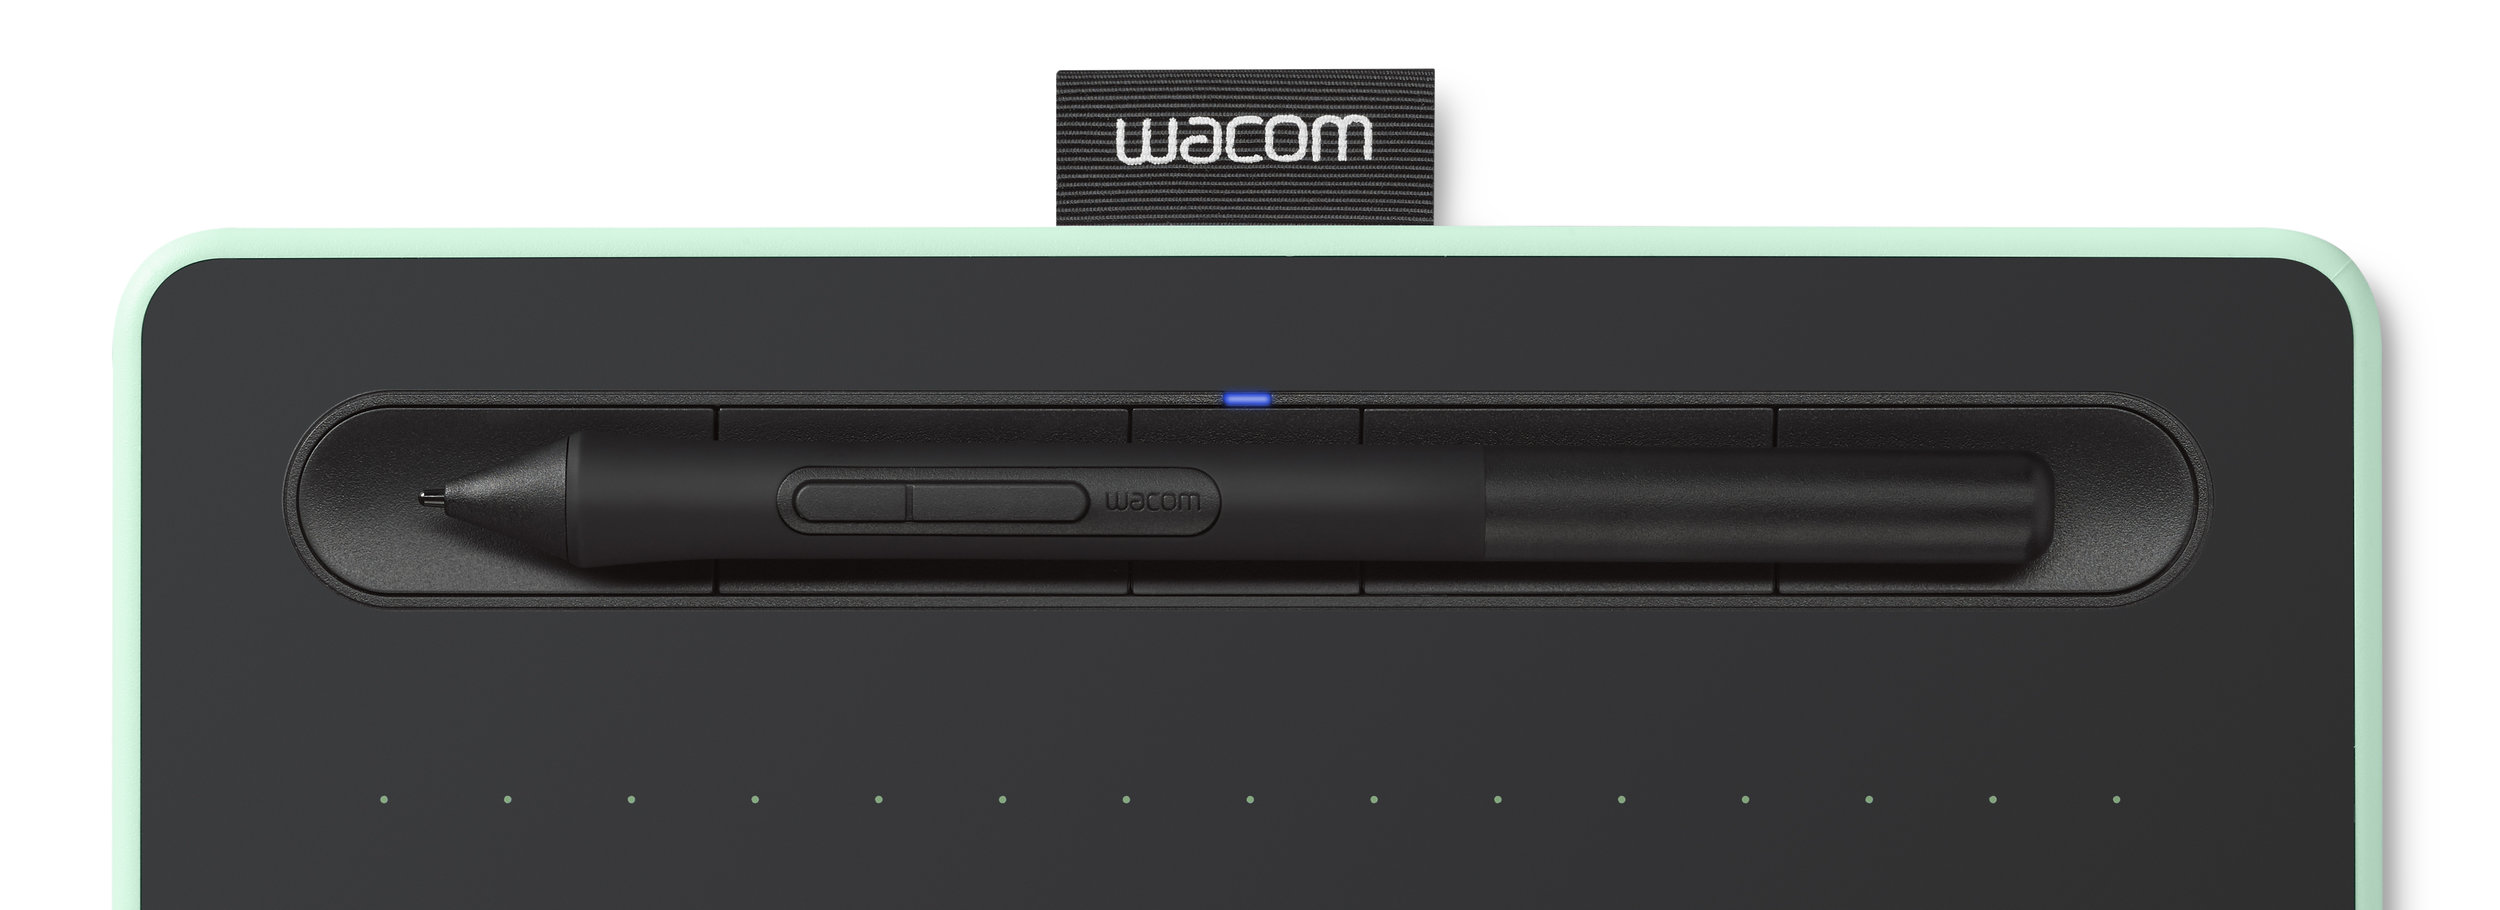 Faster than ever - The pressure-sensitive pen, touch gestures, and ExpressKeys all create a more natural and user friendly creative environment.